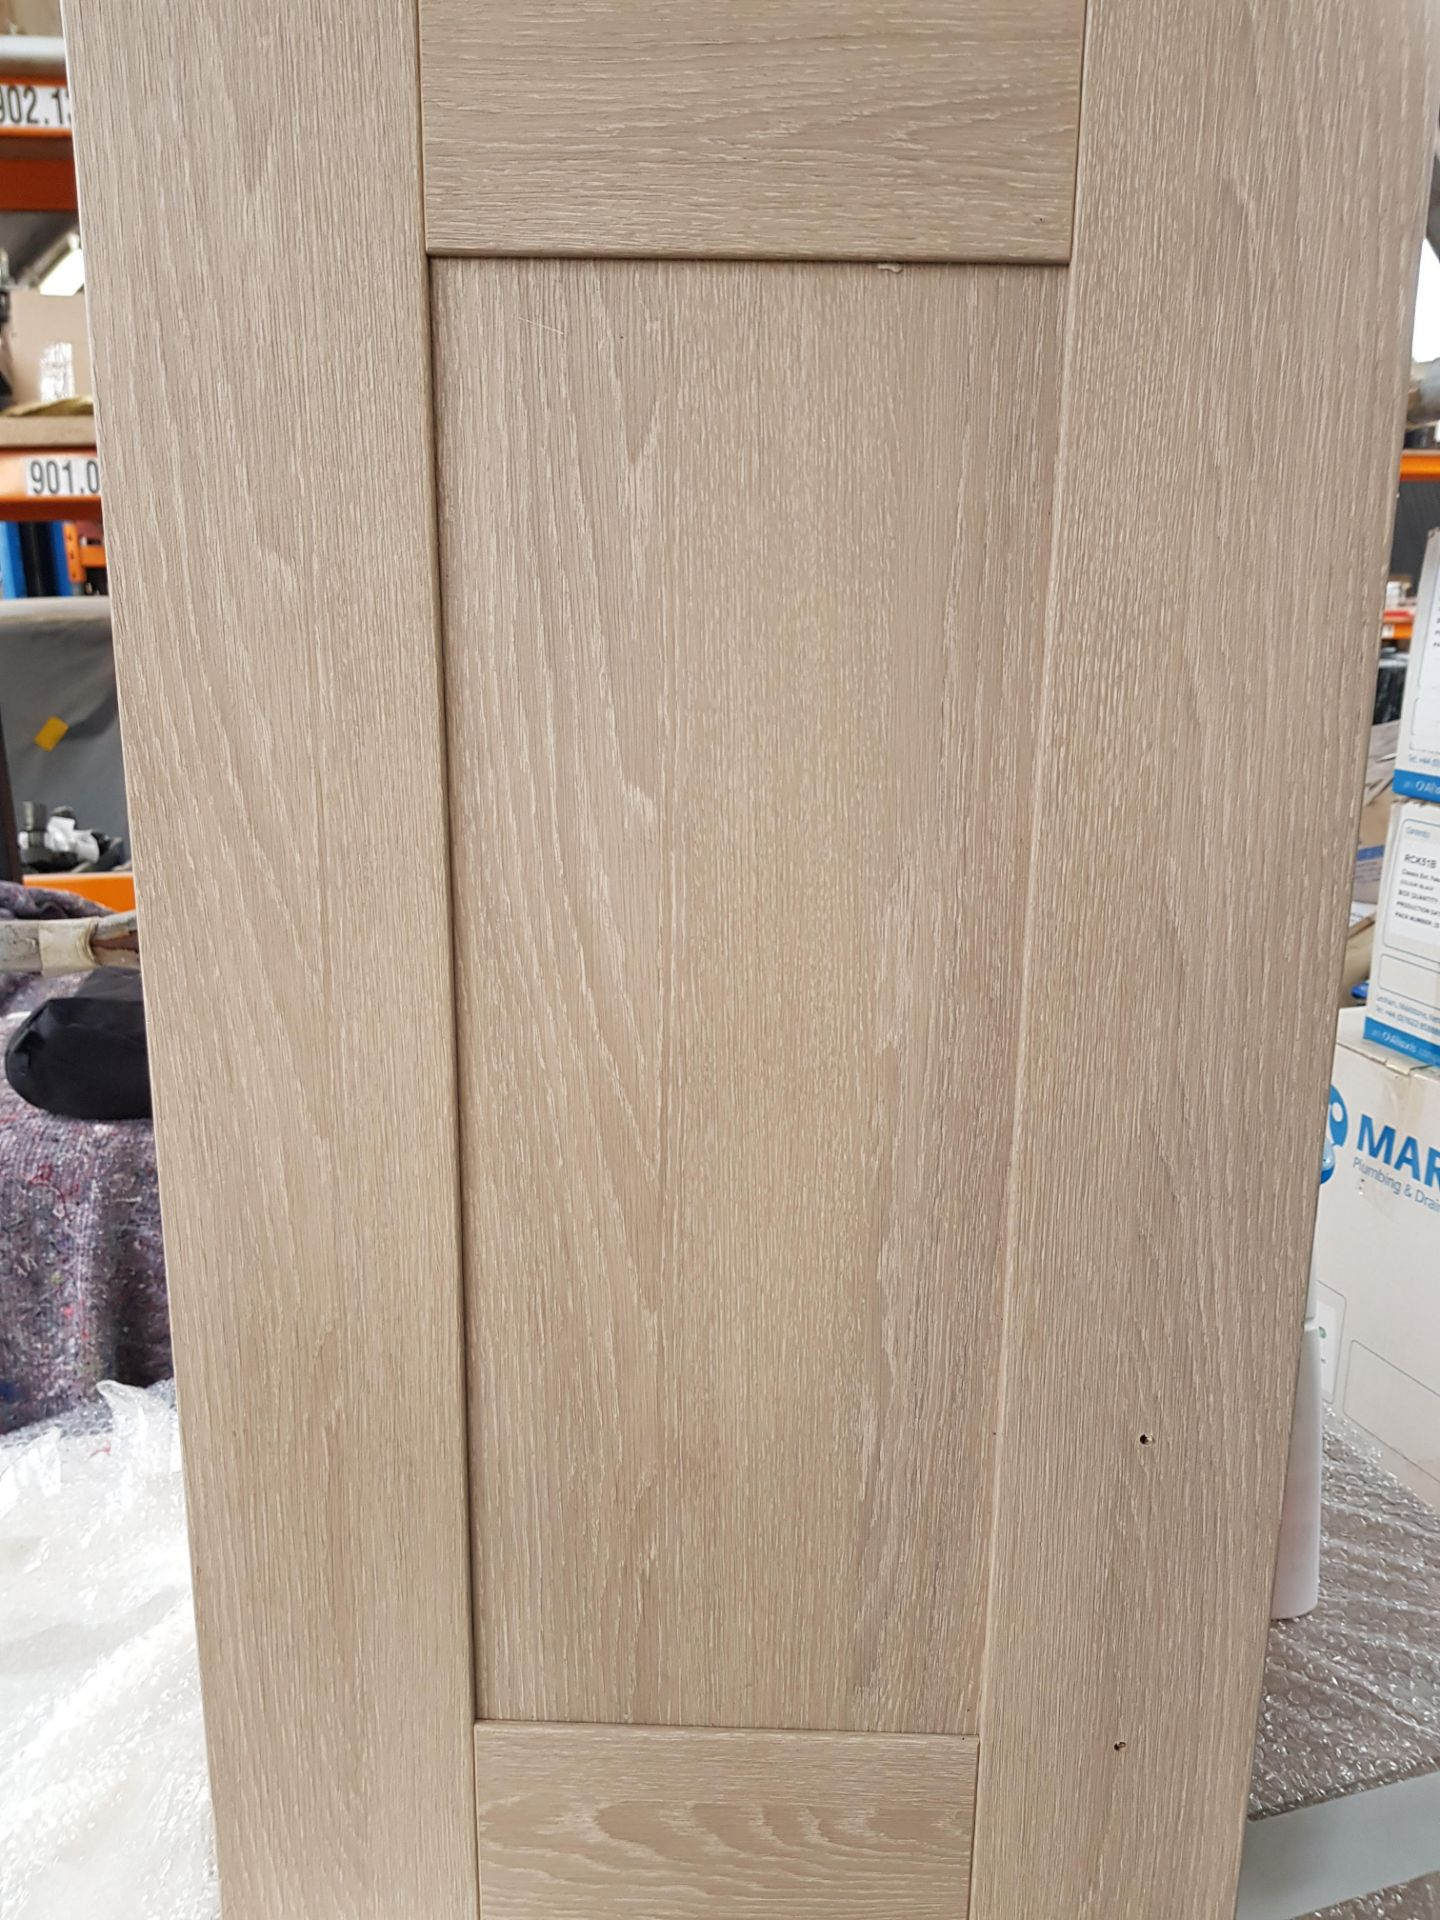 Lot 56 - KITCHEN CUPBOARDS 2 CORNER AND 3 SINGLE WALL UNIT